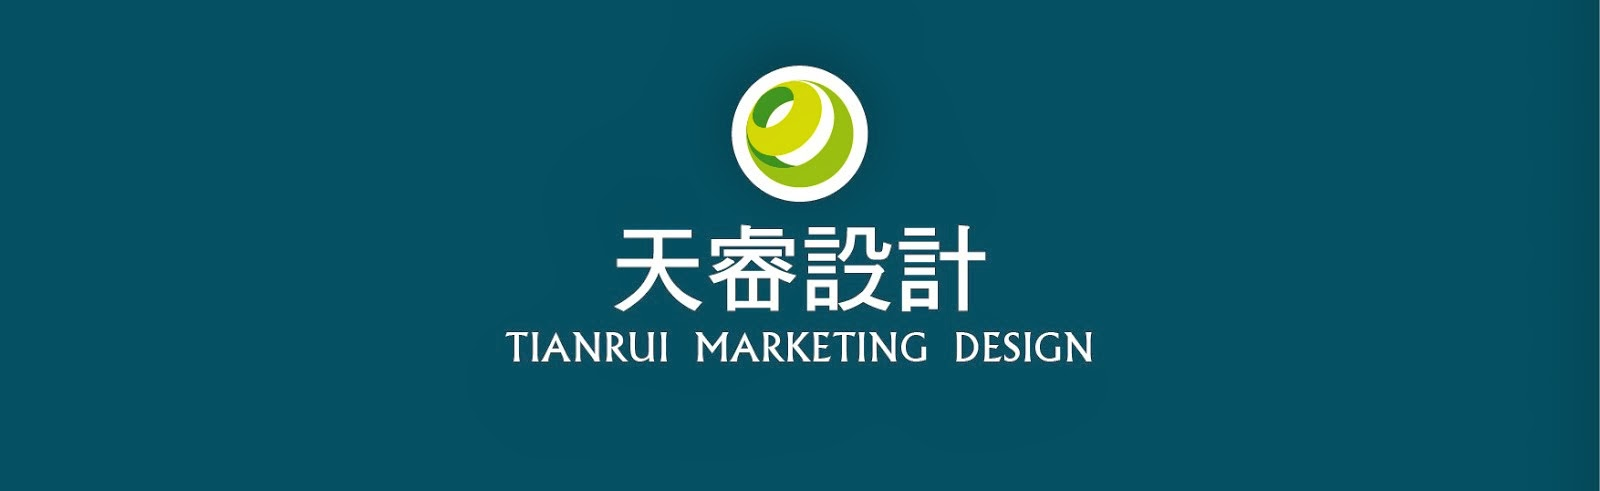 天睿設計 Tianrui  Marketing  Design